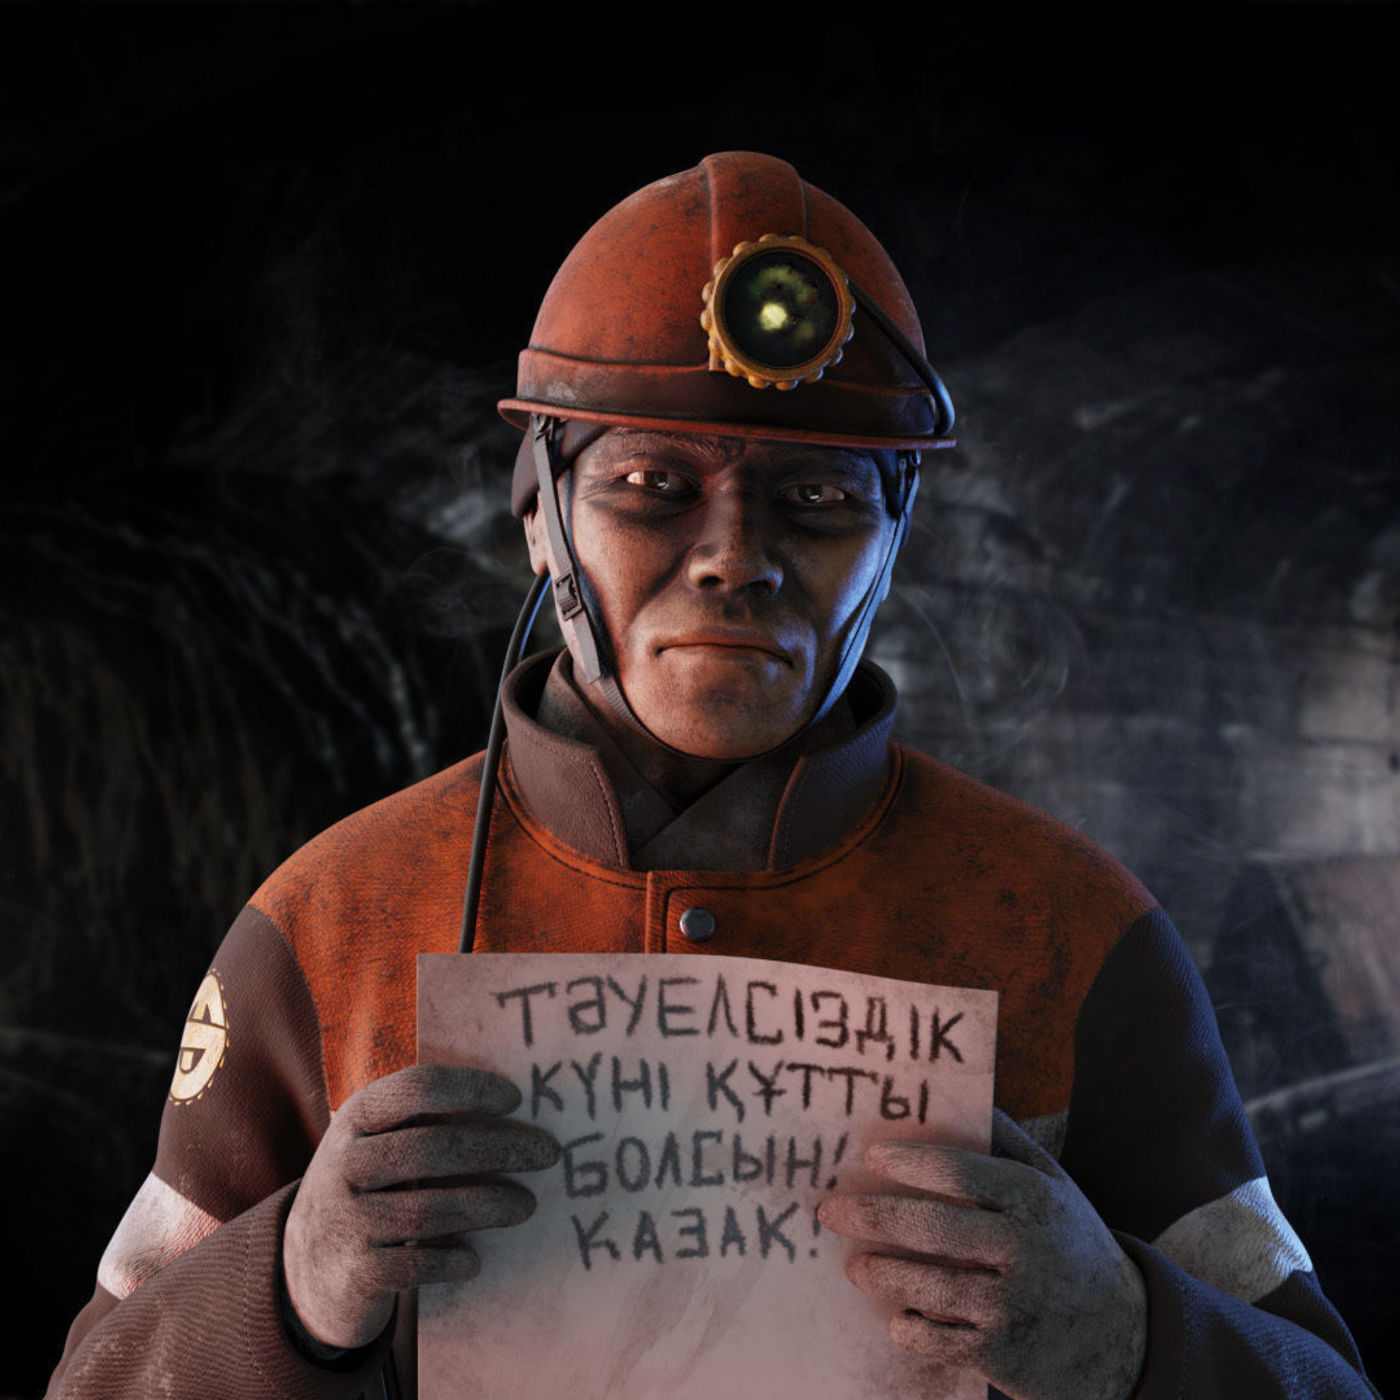 The Miner 3D model (Dedicated for miners in Kazakhstan)